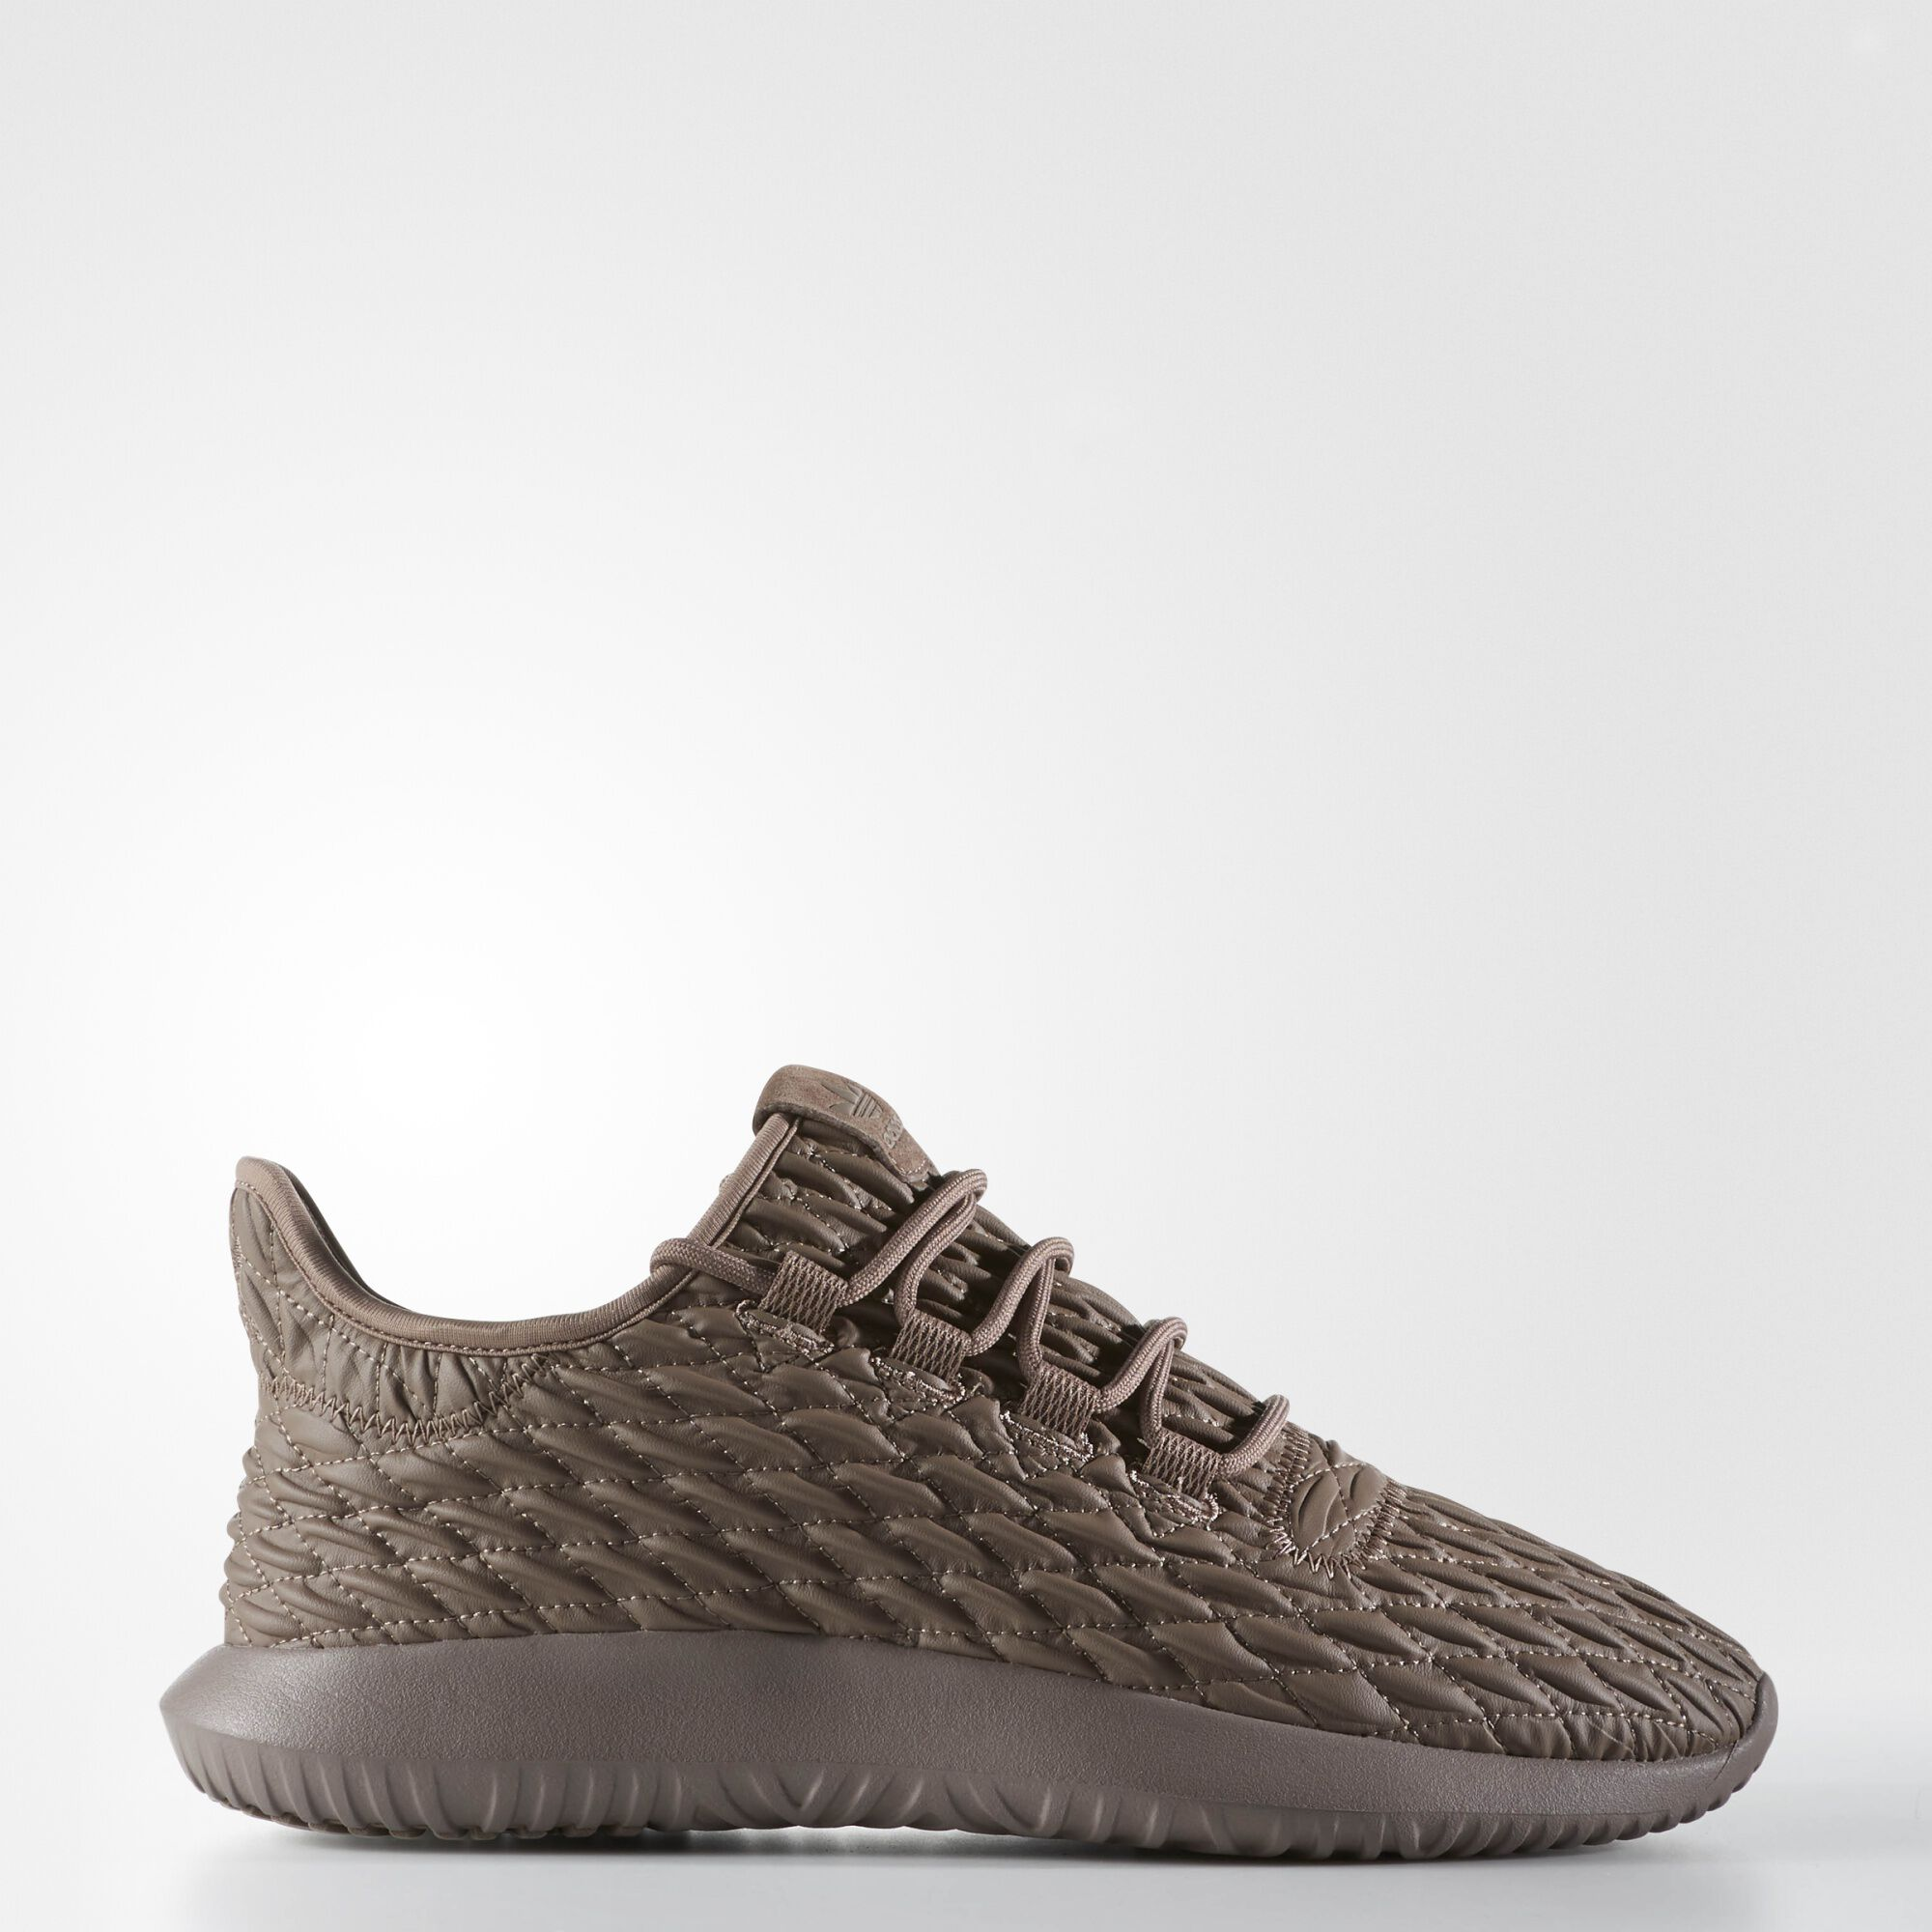 Adidas Tubular Brown